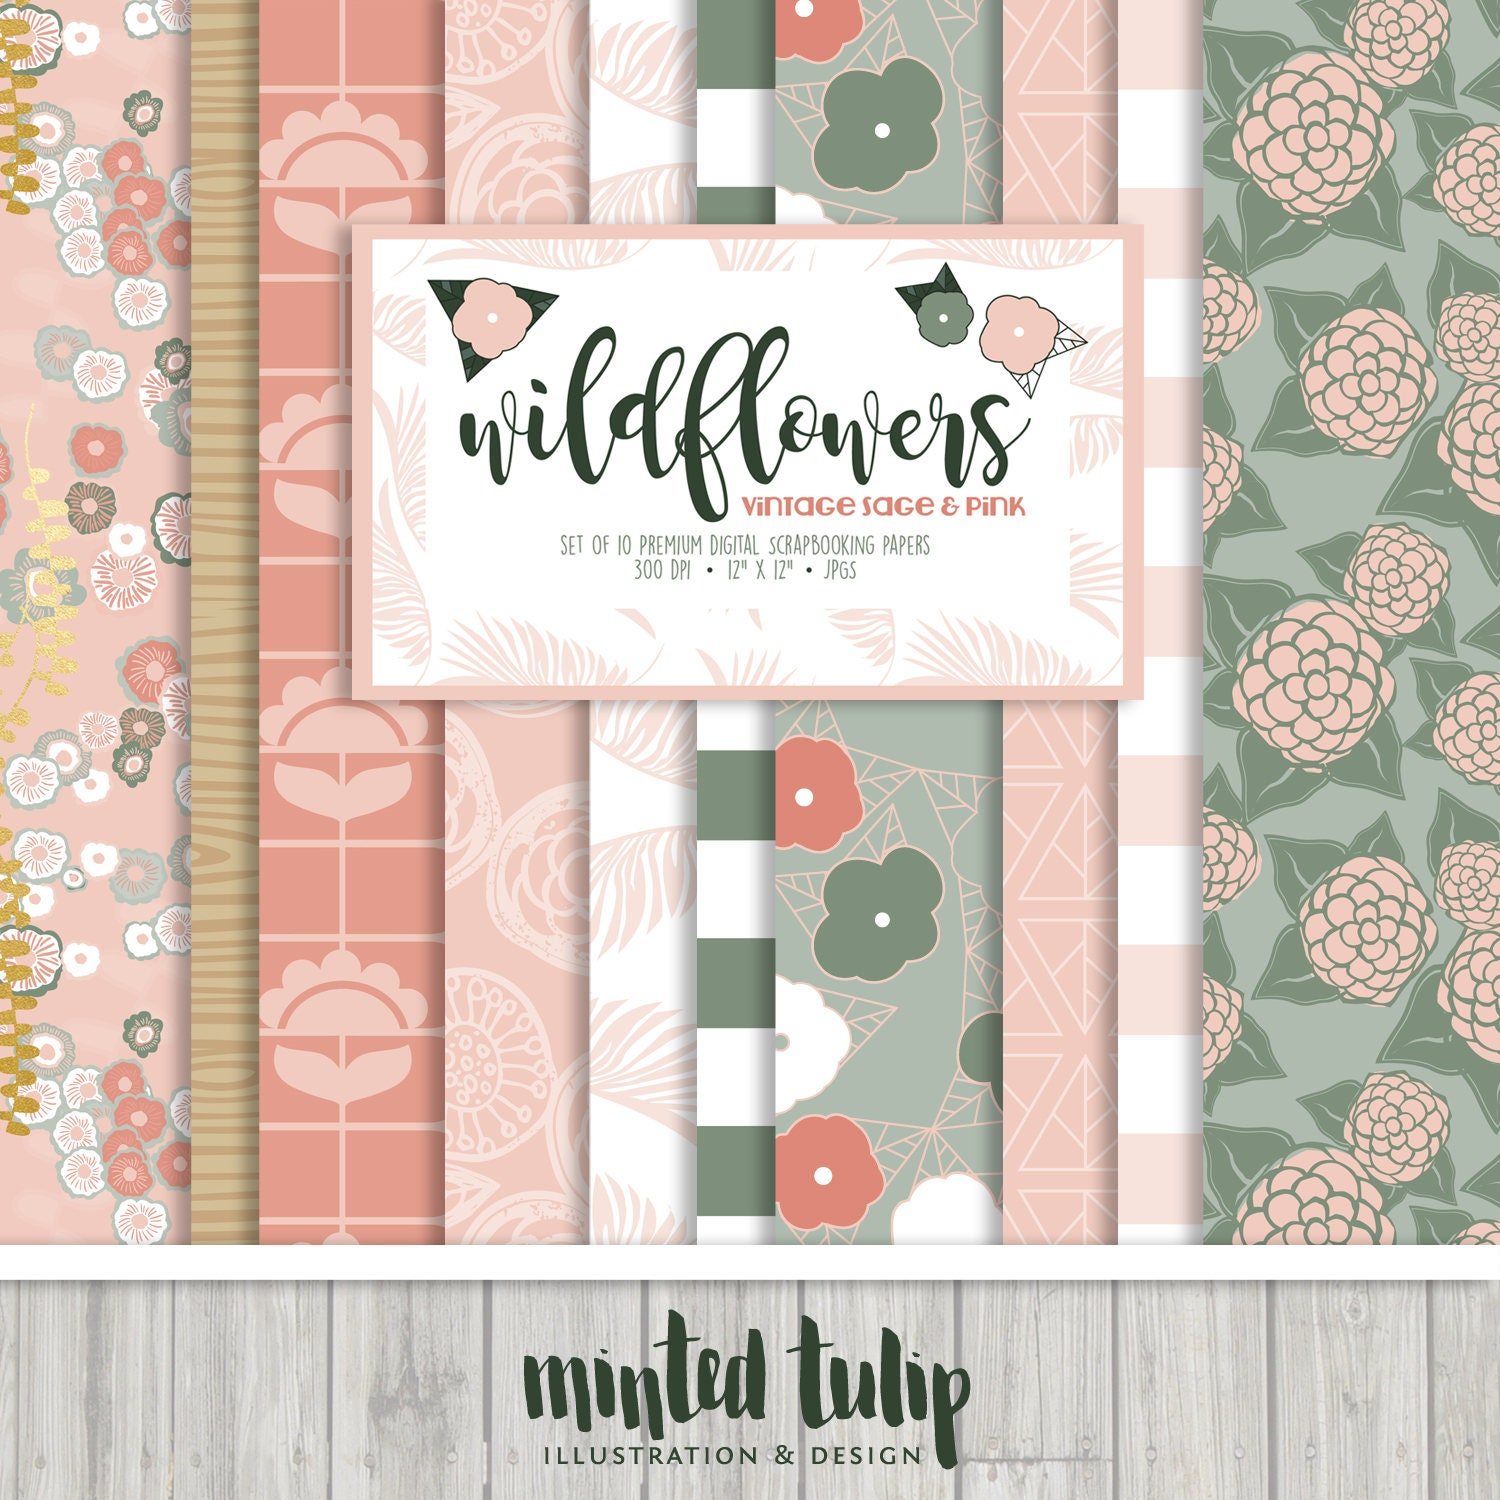 Scrapbook paper collections - Wildflowers Vintage Sage And Pink Digital Scrapbooking Paper Collection Set Of 10 Digital Papers